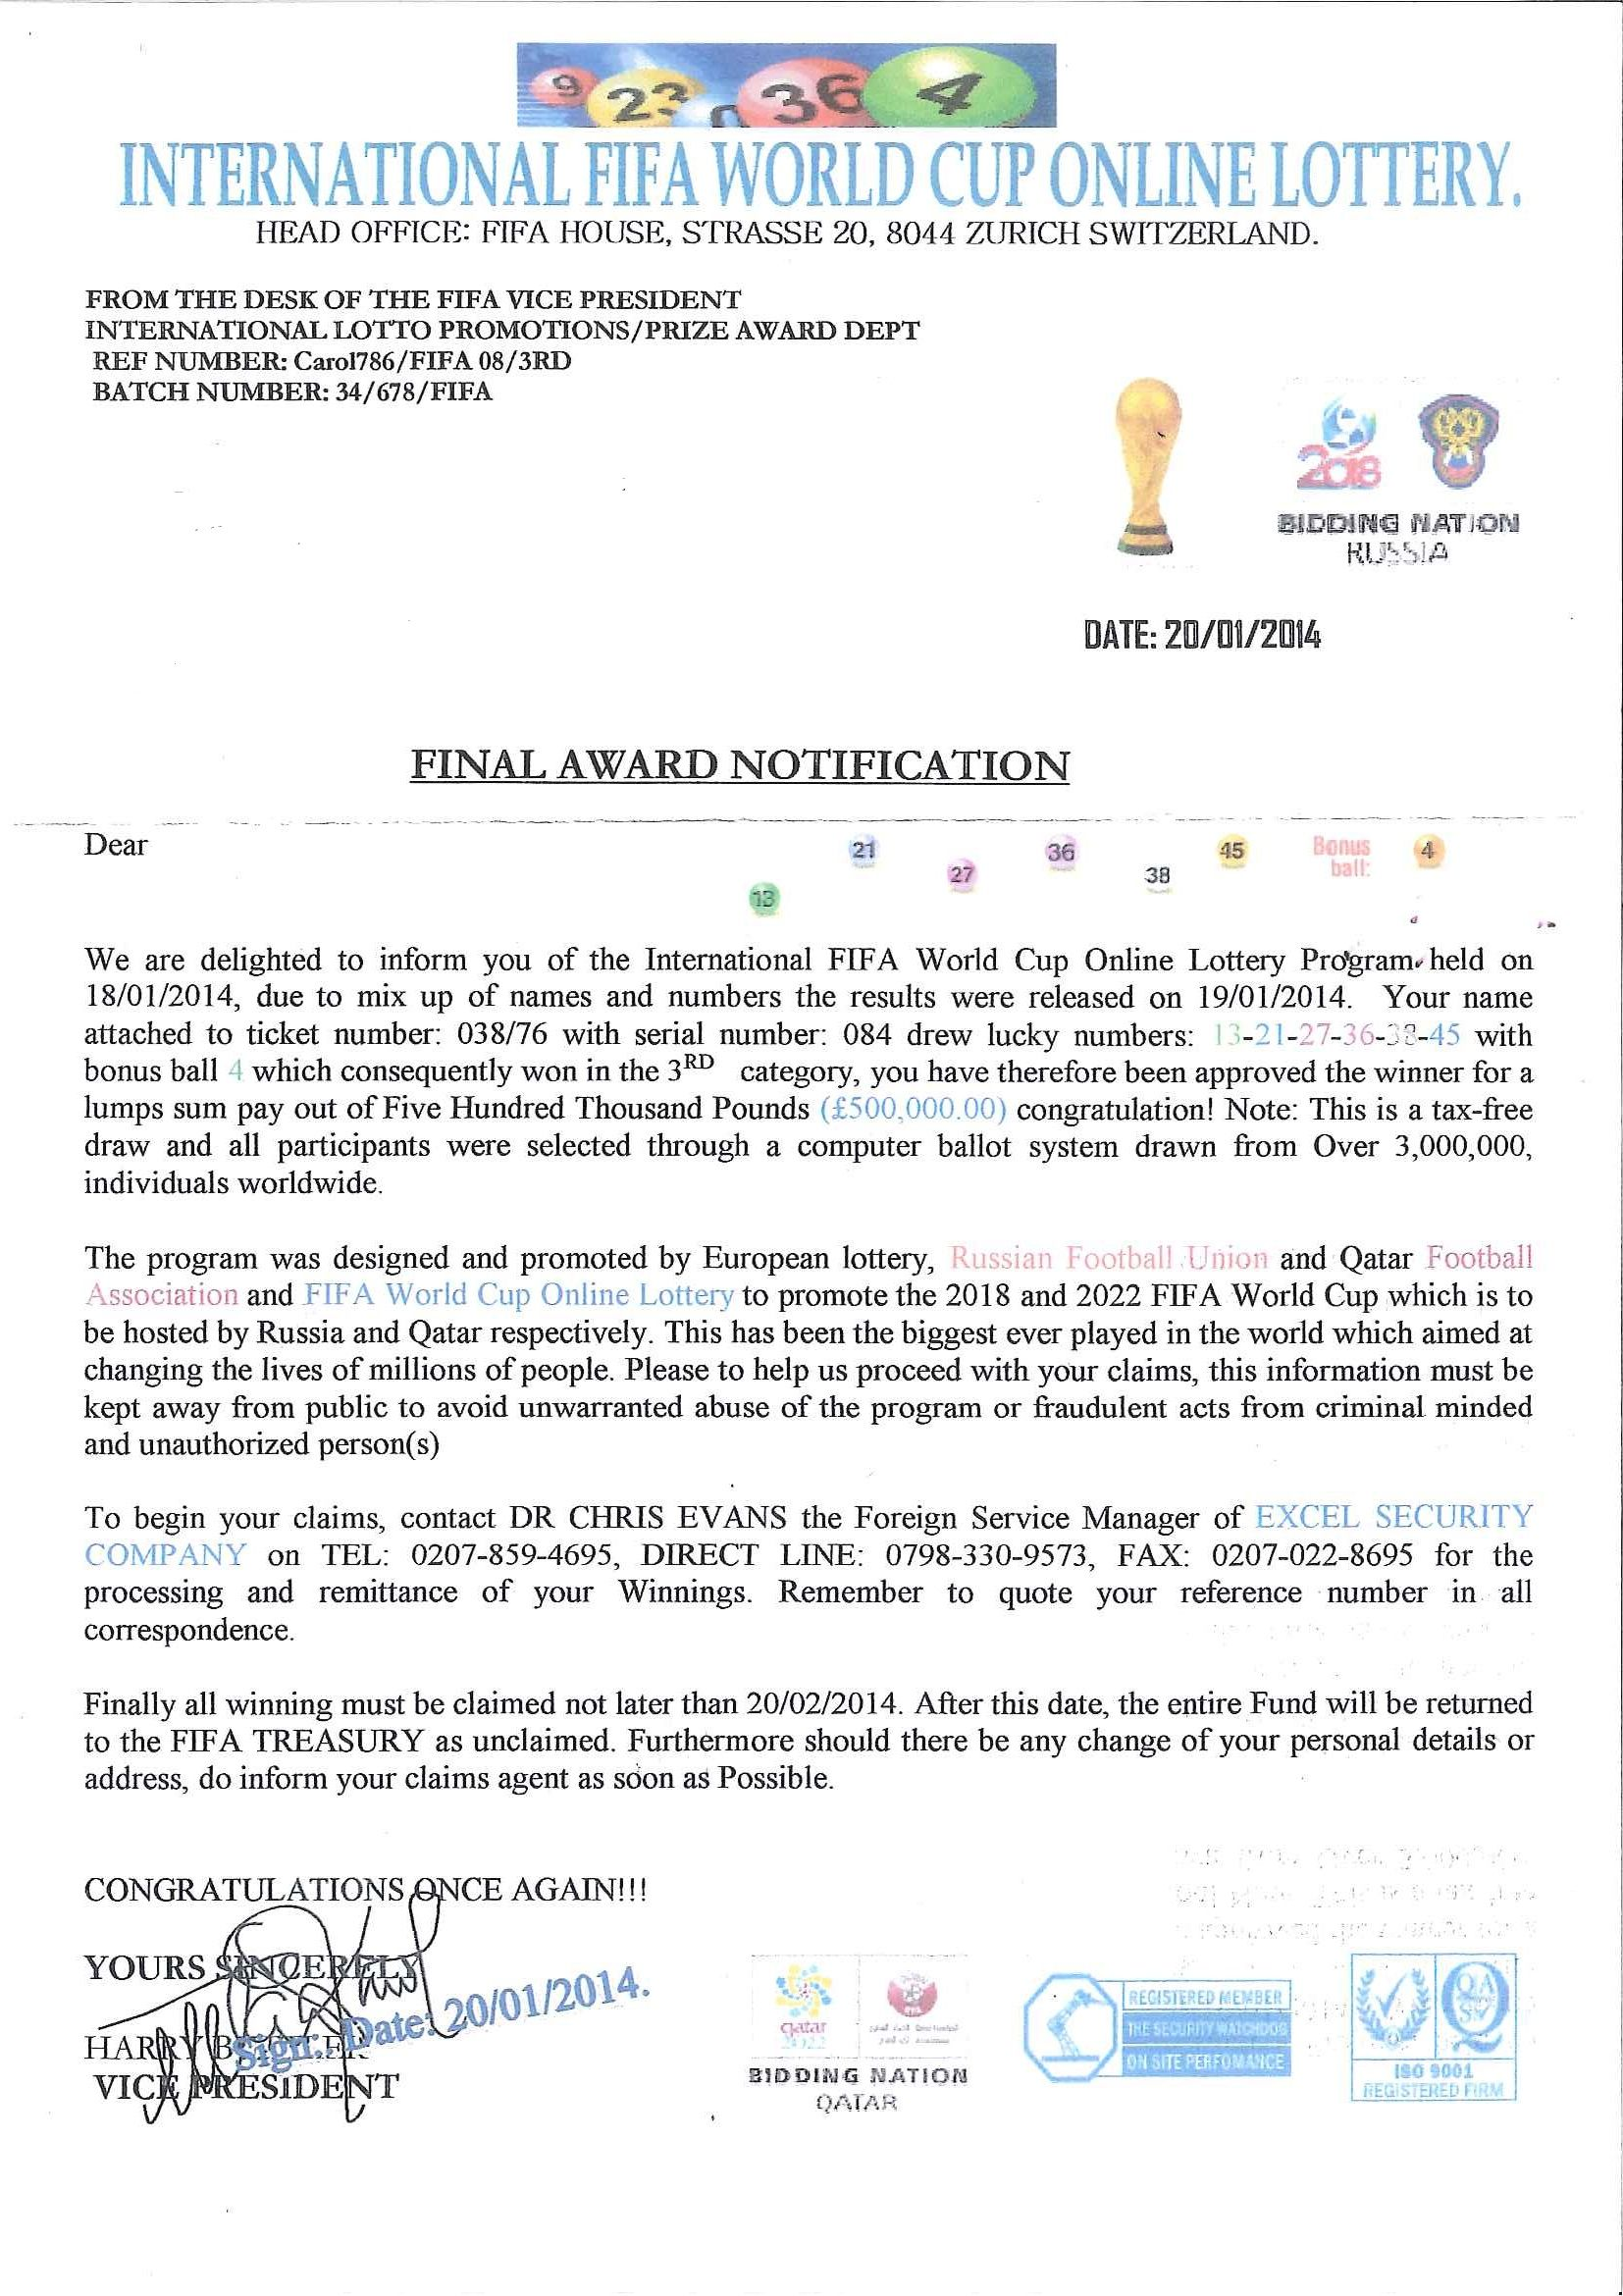 International FIFA World Cup line Lottery scam letters are being